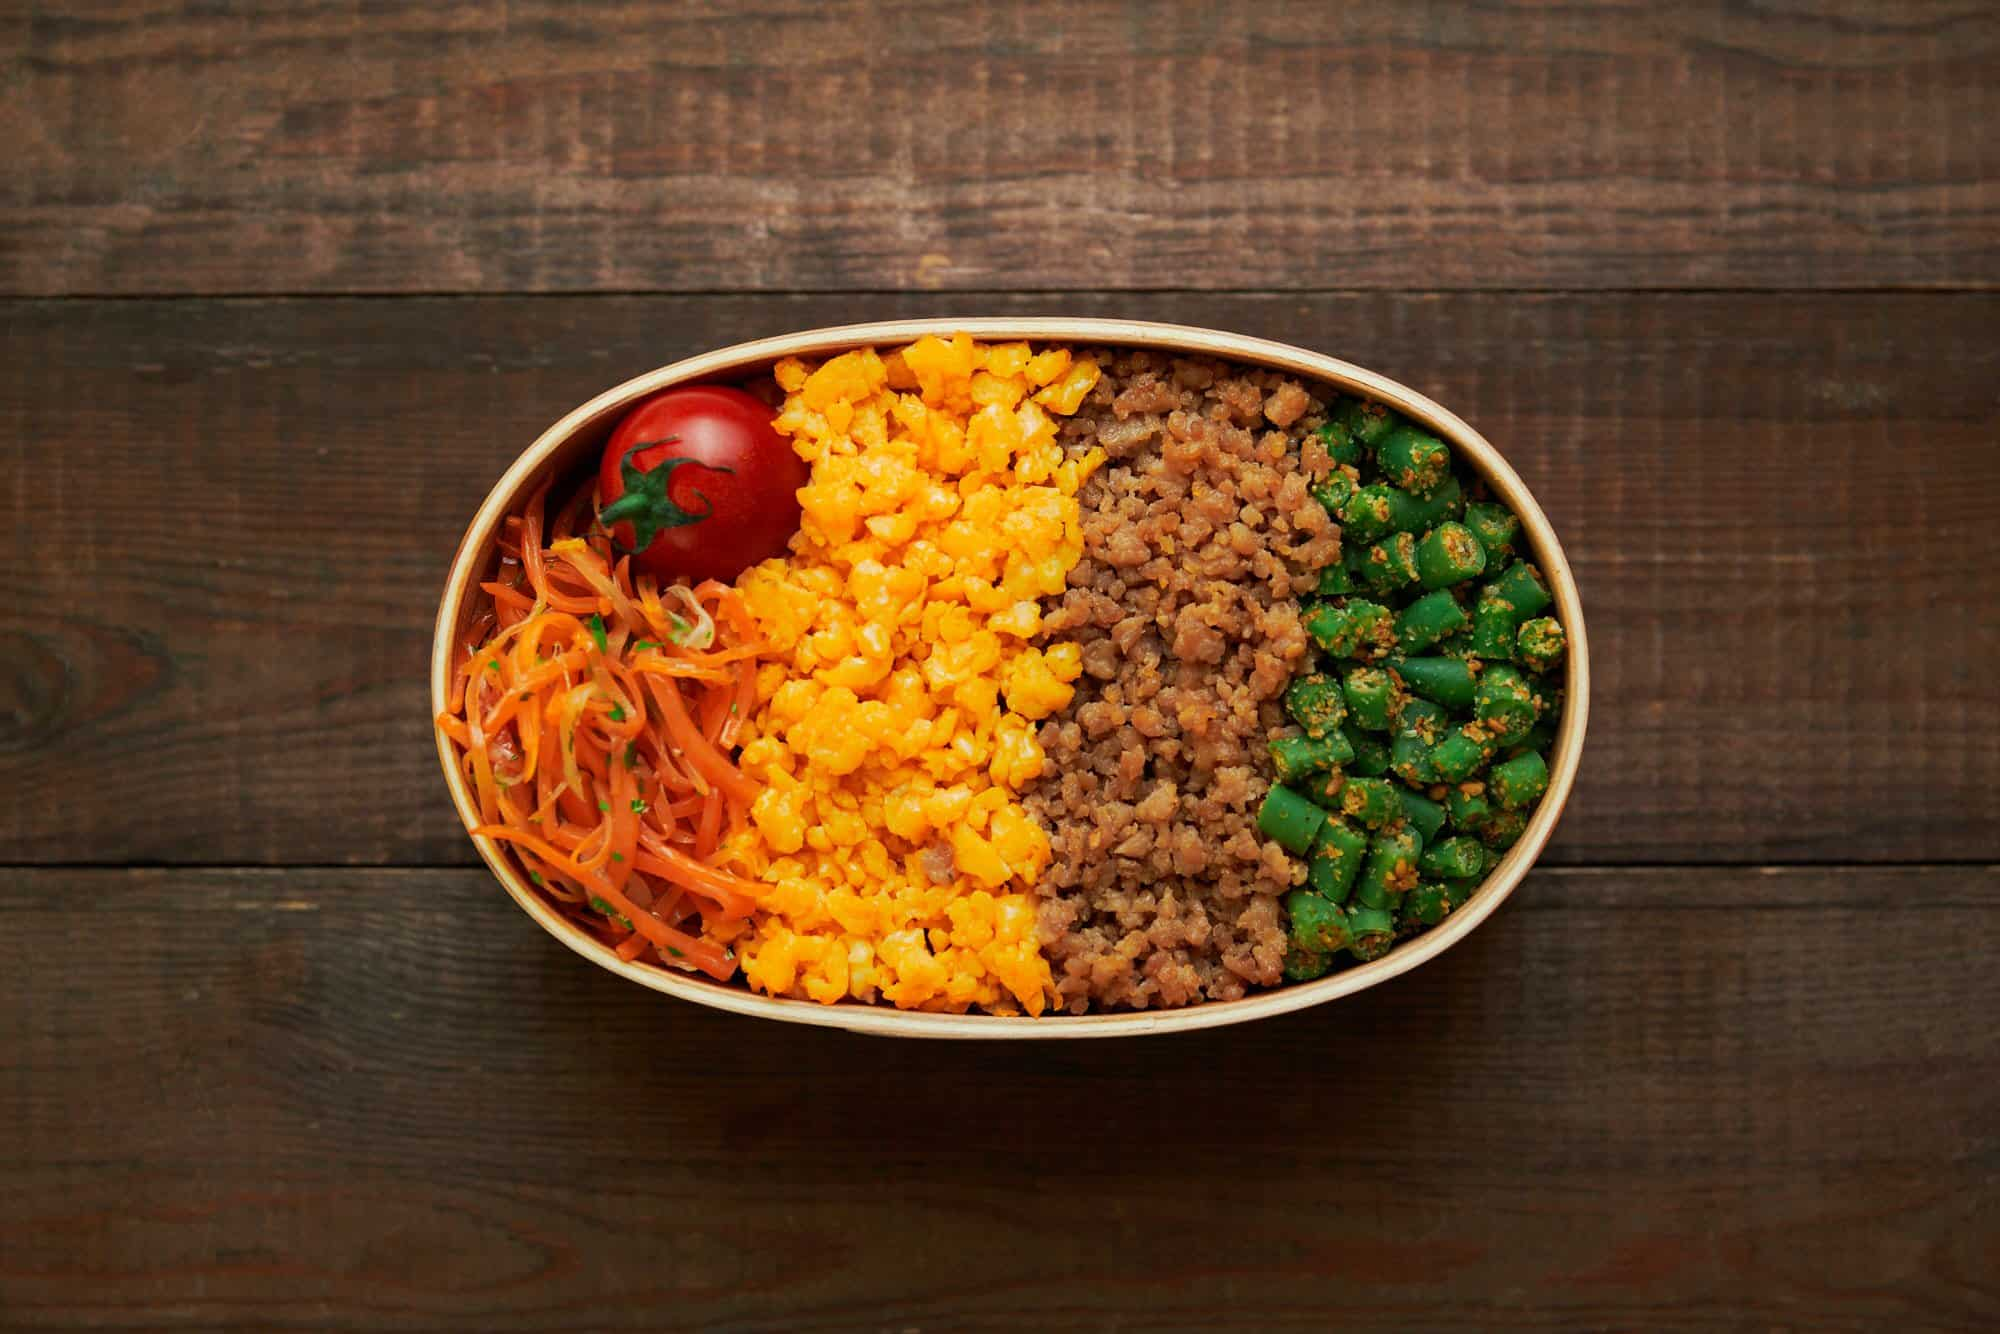 Soboro Don Bento is a rainbow of colors tastes and textures in a portable bento box lunch.